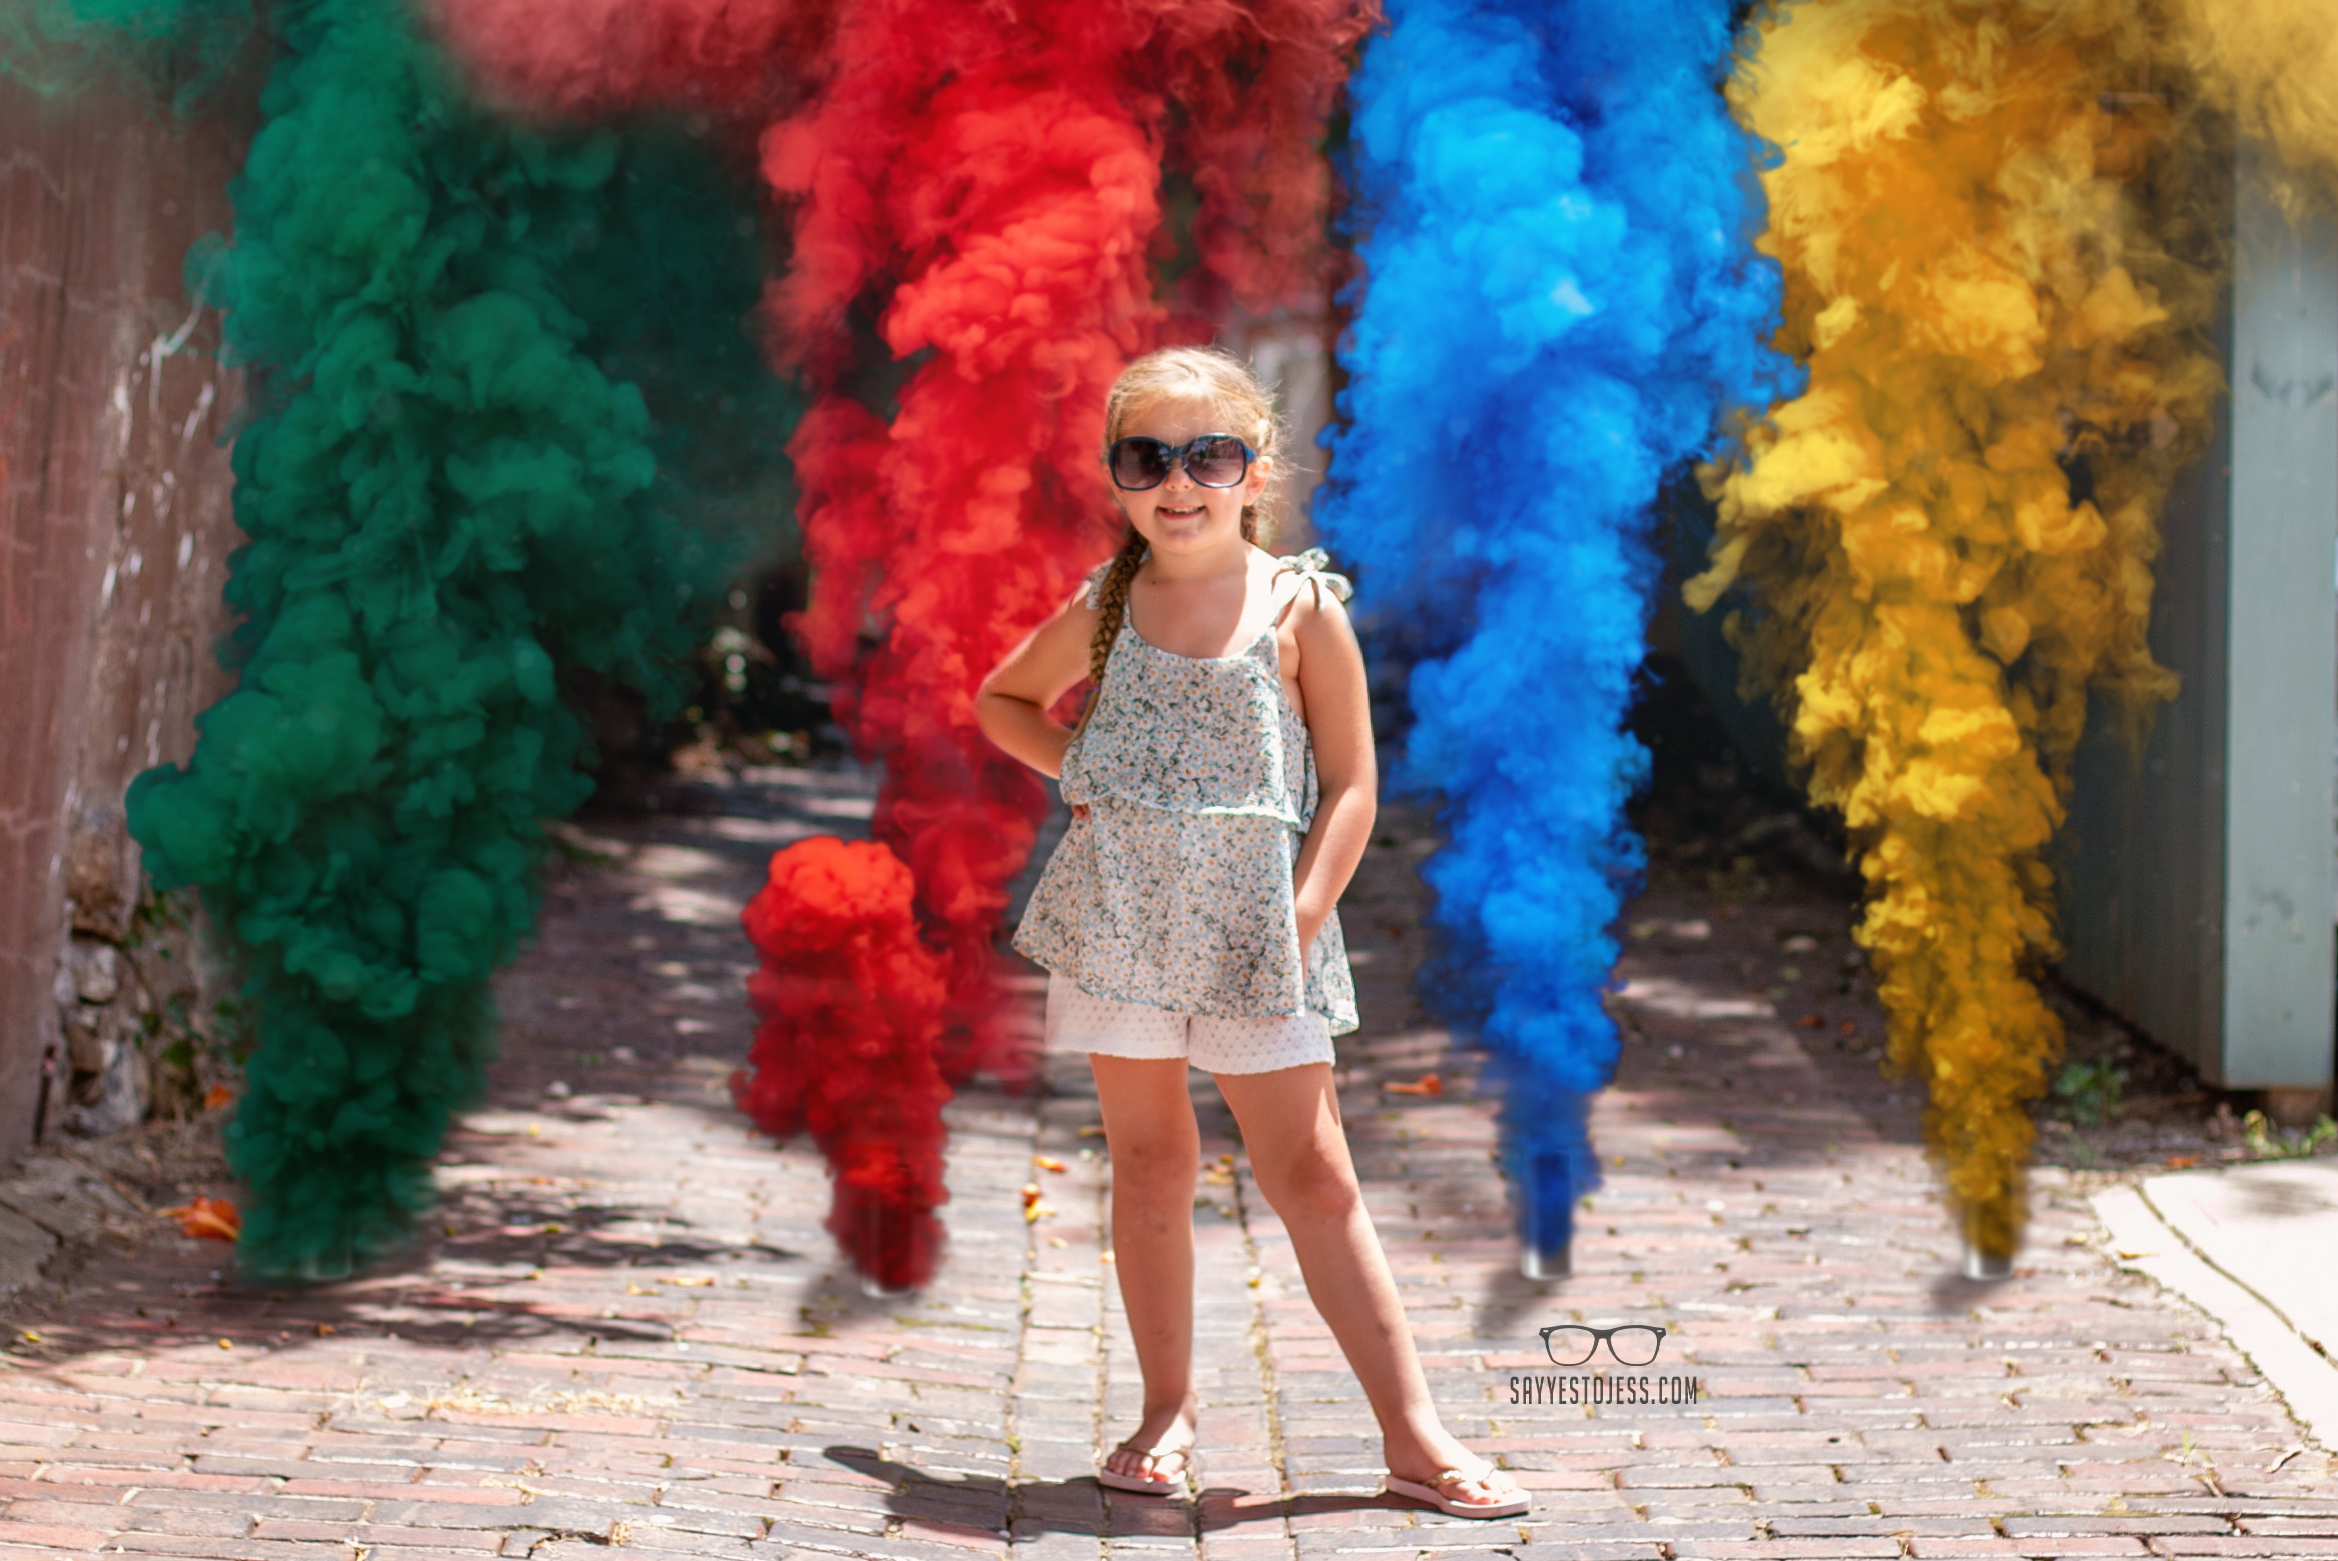 Adorable Photo of little girl by Family Photographer in Cincinnati Ohio Jess Summers of Say Yes to Jess